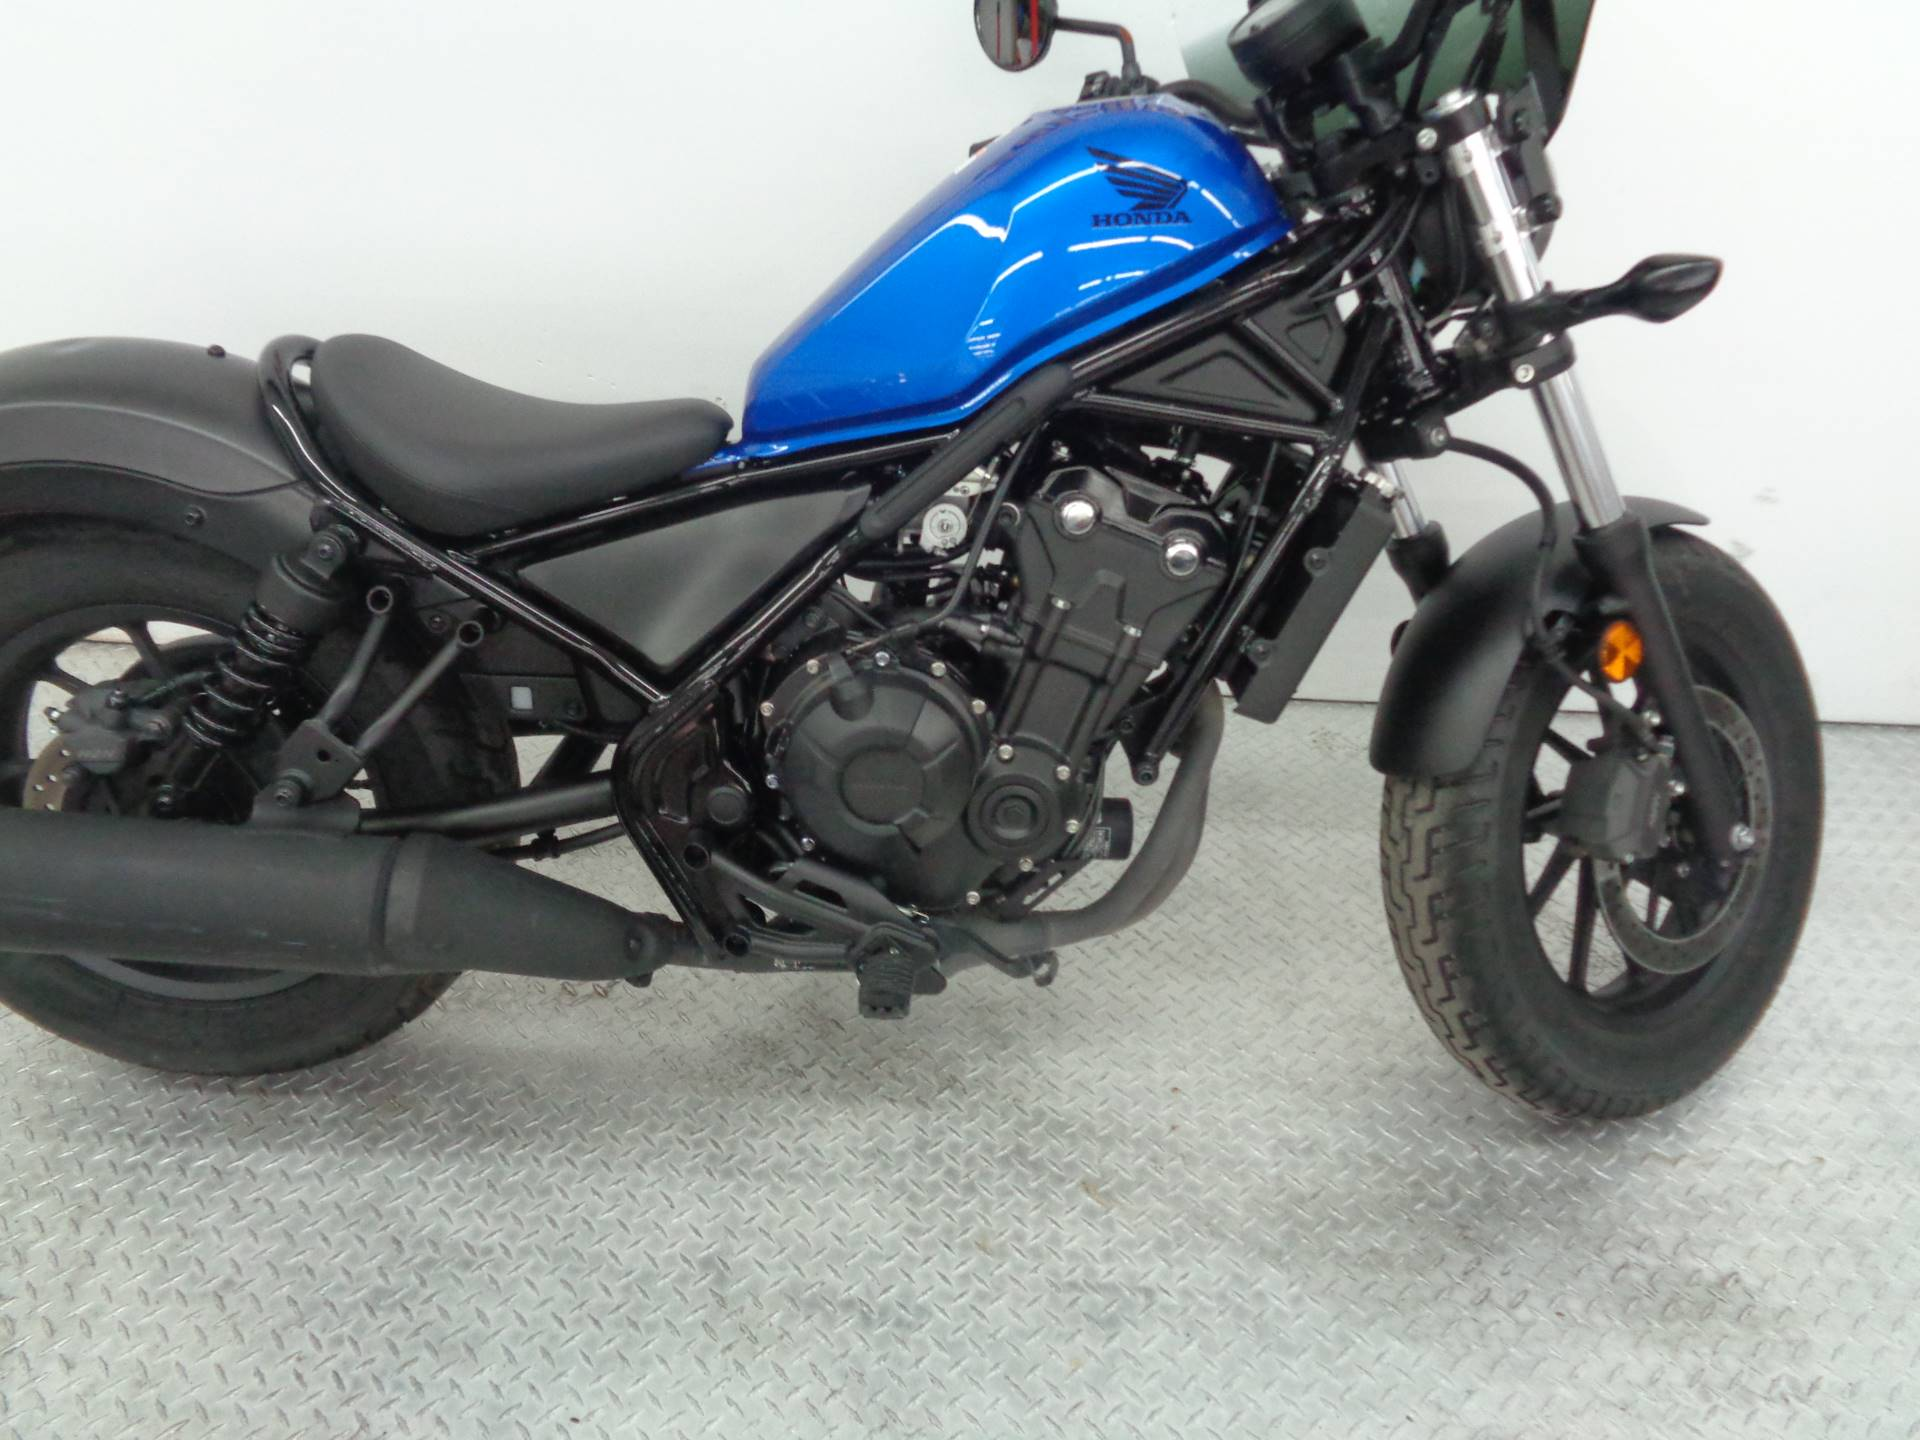 2018 Honda Rebel 500 in Tulsa, Oklahoma - Photo 9